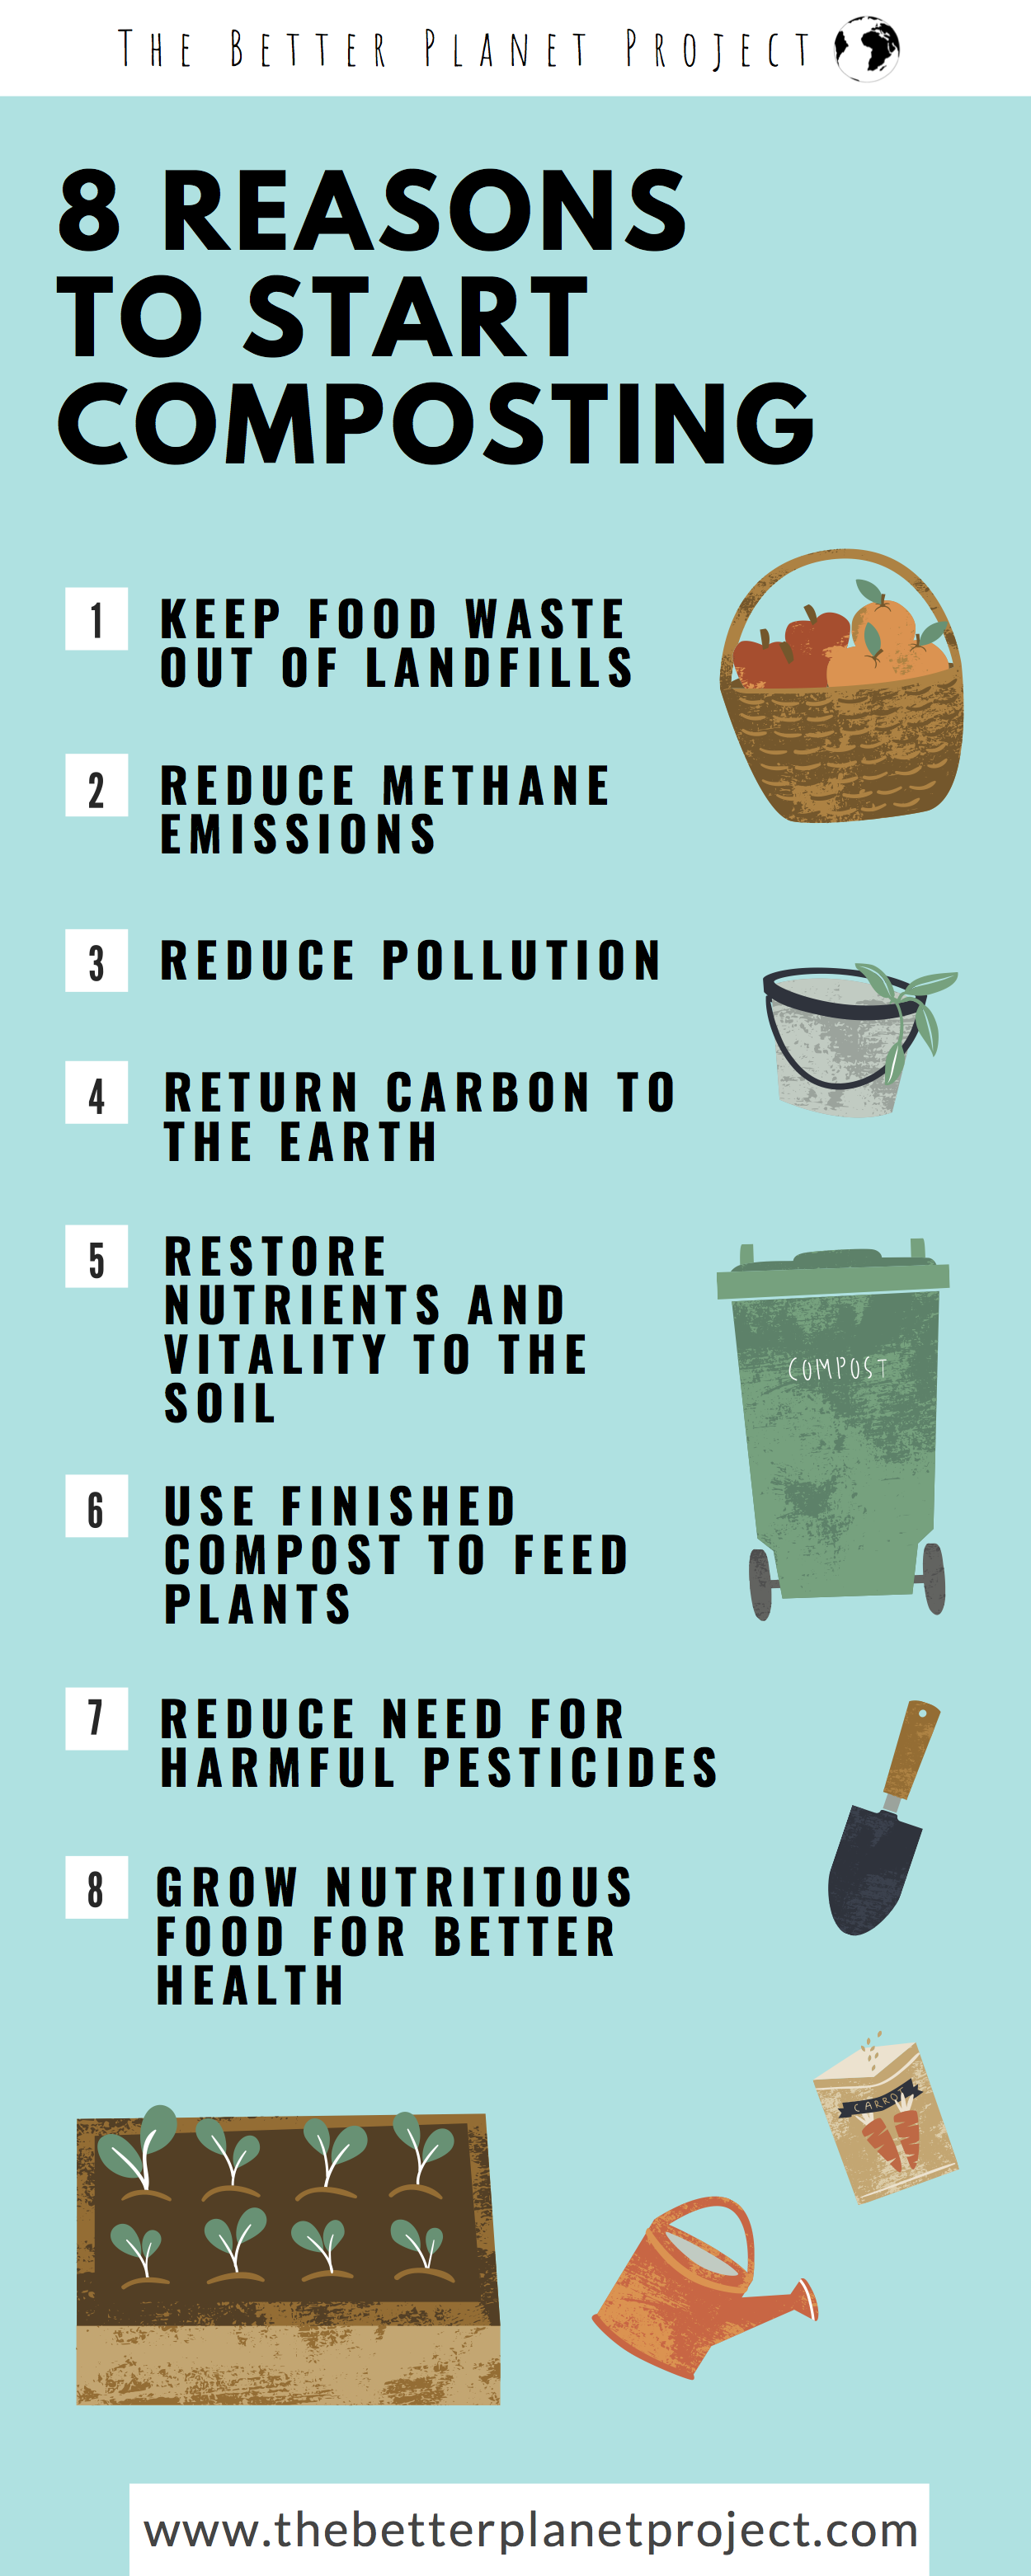 8 reasons to start composting